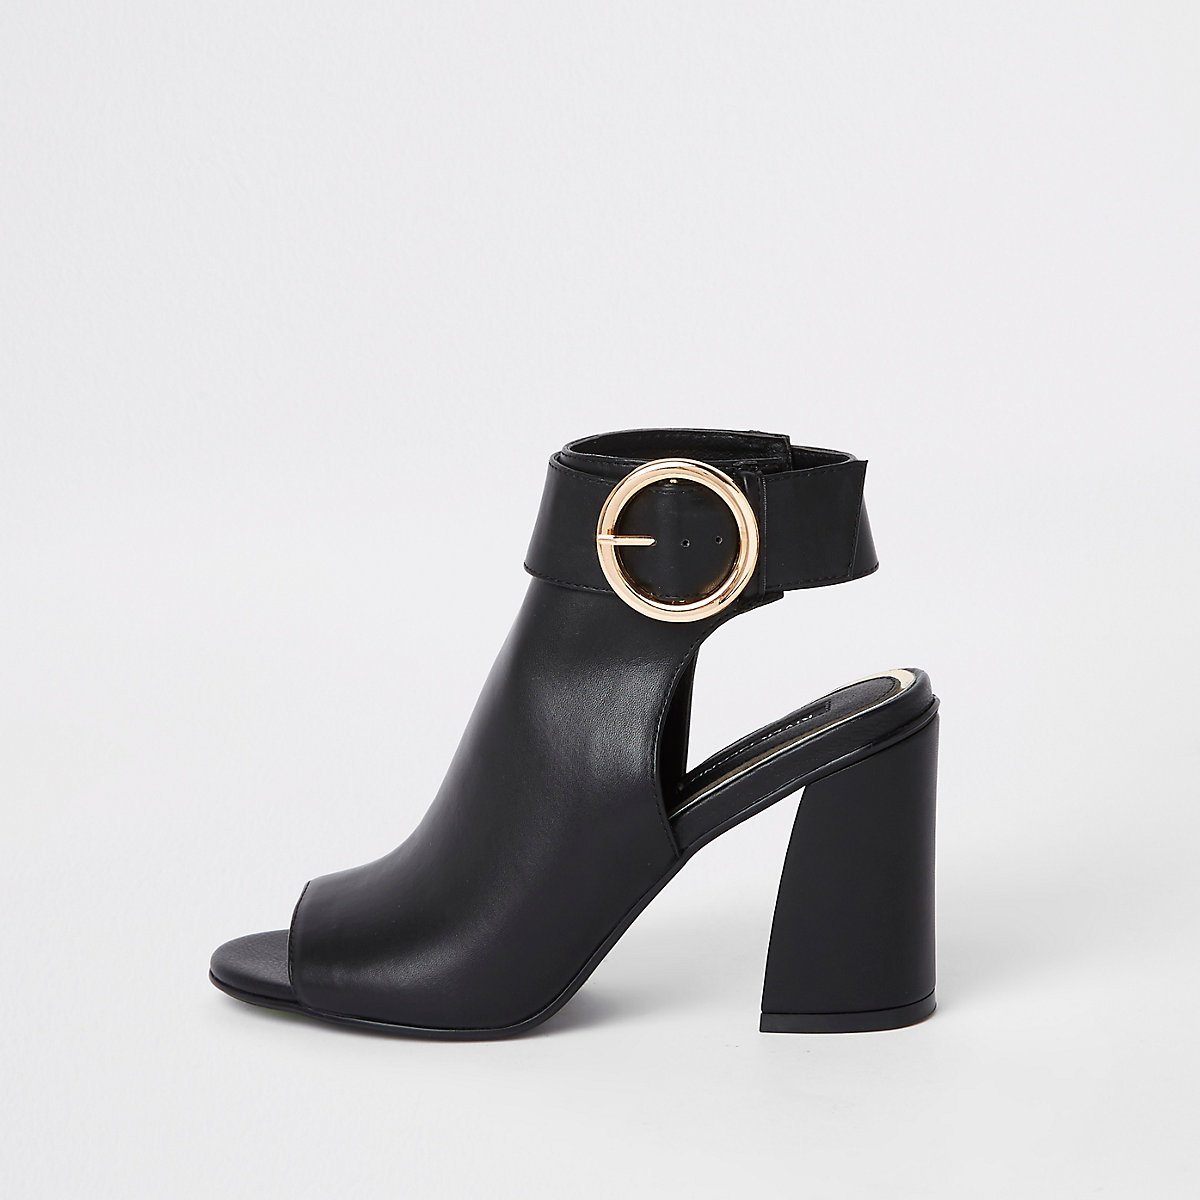 Black buckle strap ankle shoe boots